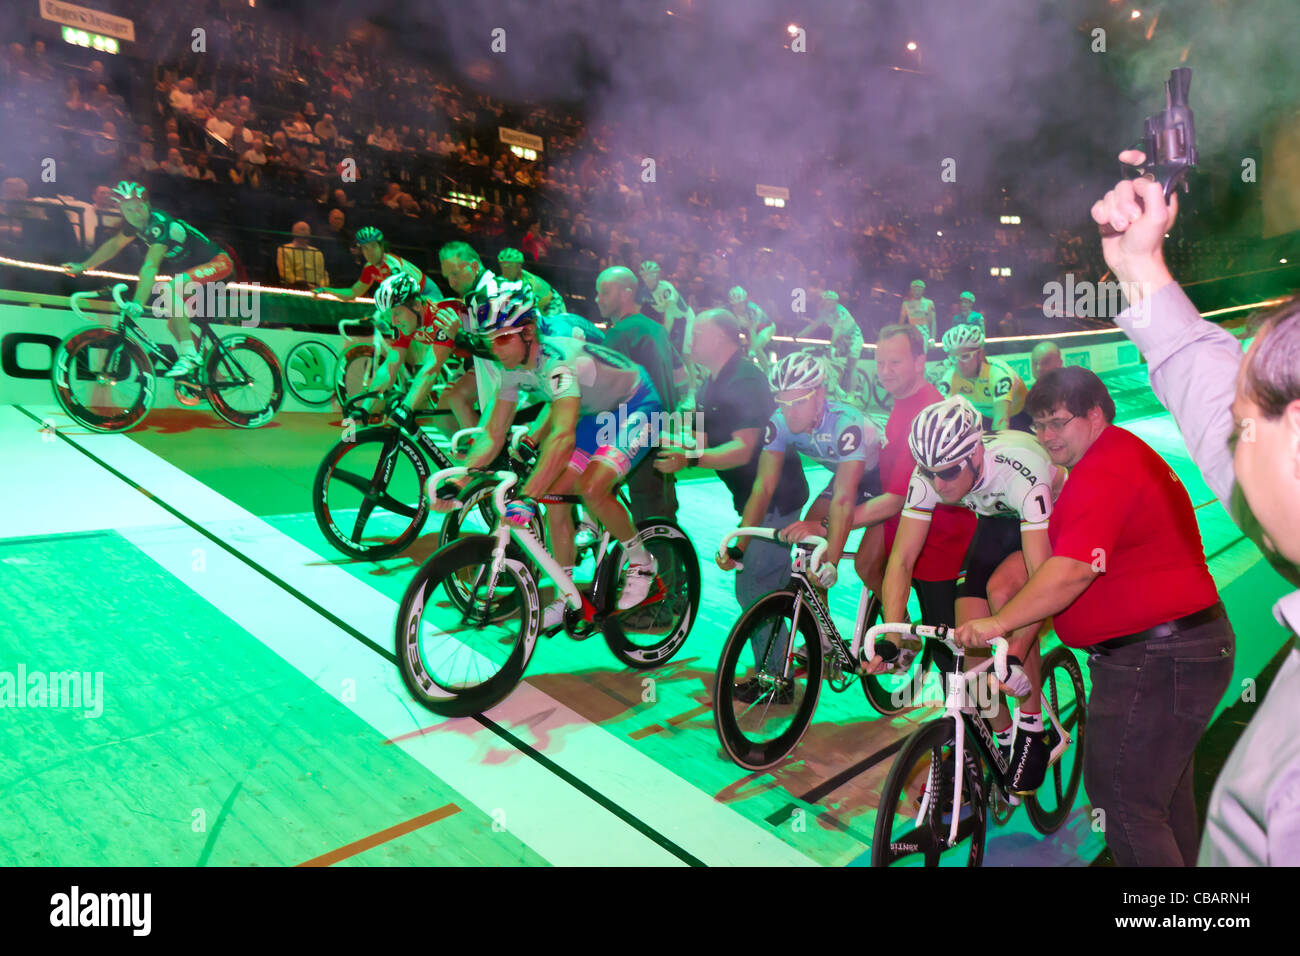 Professional athletes start a race at indoor bike challenge Sixday-Nights Zürich 2011 at Zurich Hallenstadion - Stock Image